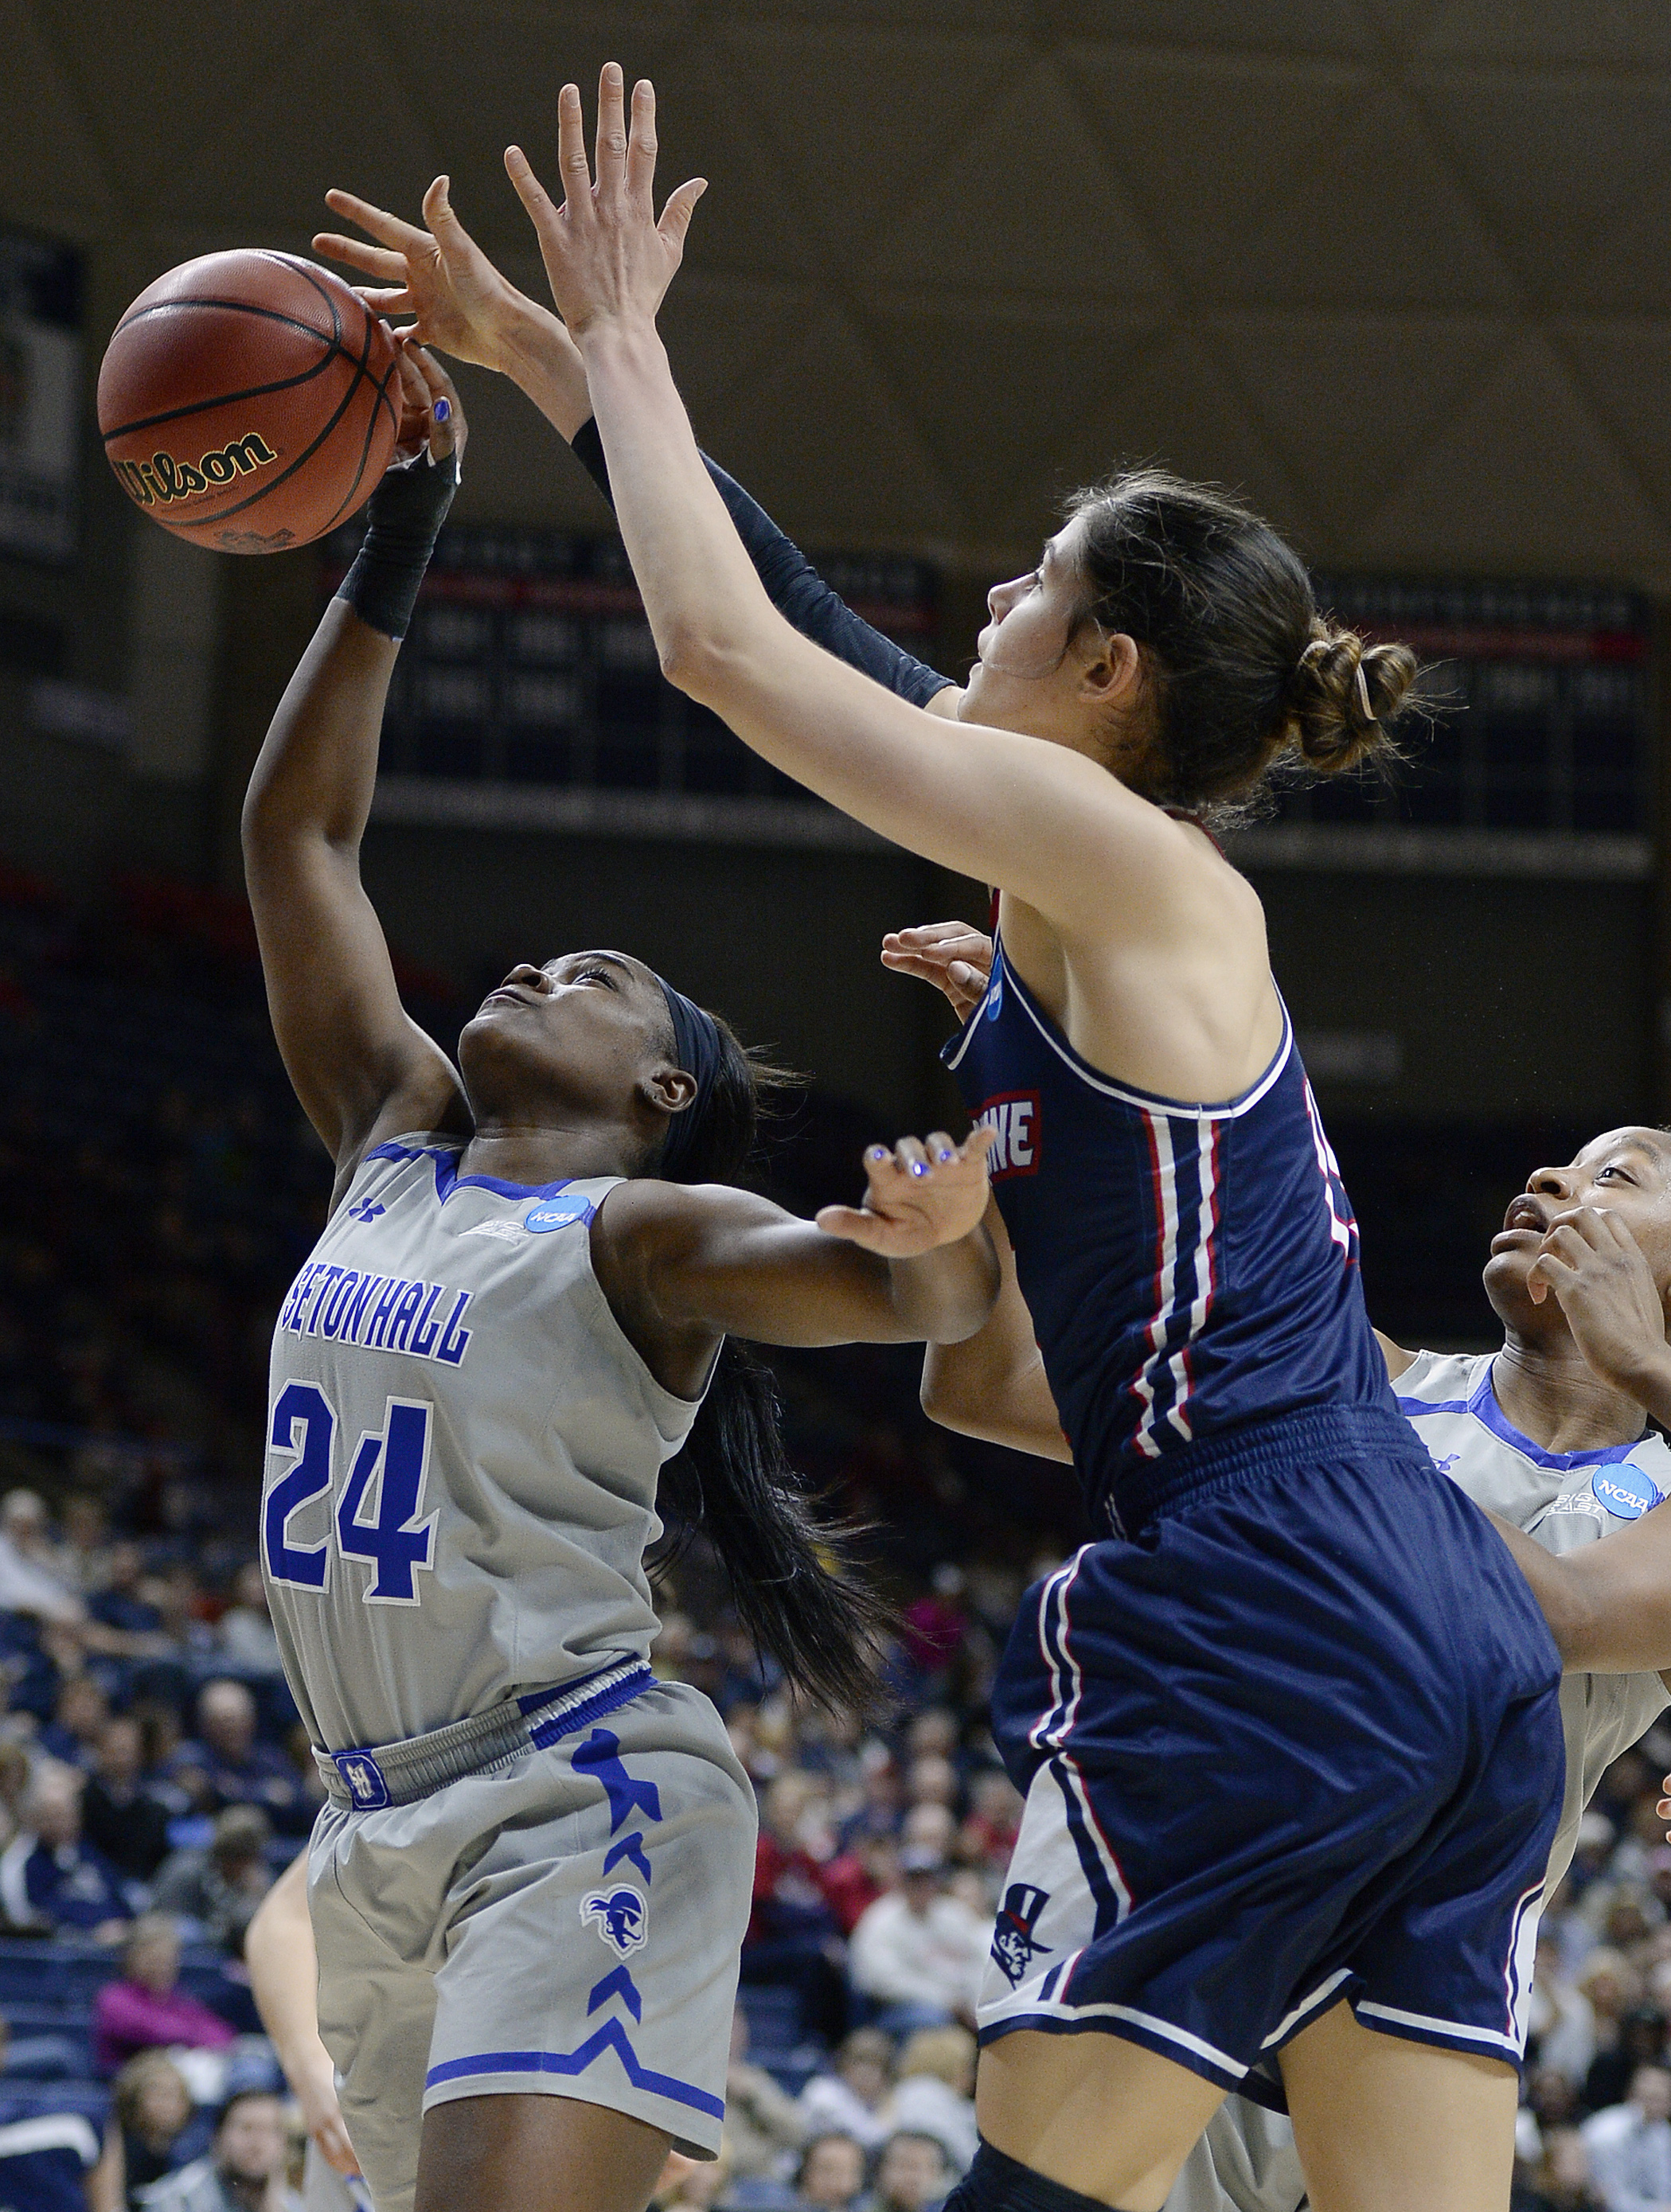 Seton Halls Shakena Richardson, left, grabs a rebound over Duquesnes Amadea Szamosi, right, during the first half of a first-round women's college basketball game in the NCAA Tournament, Saturday, March 19, 2016, in Storrs, Conn. (AP Photo/Jessica Hill)